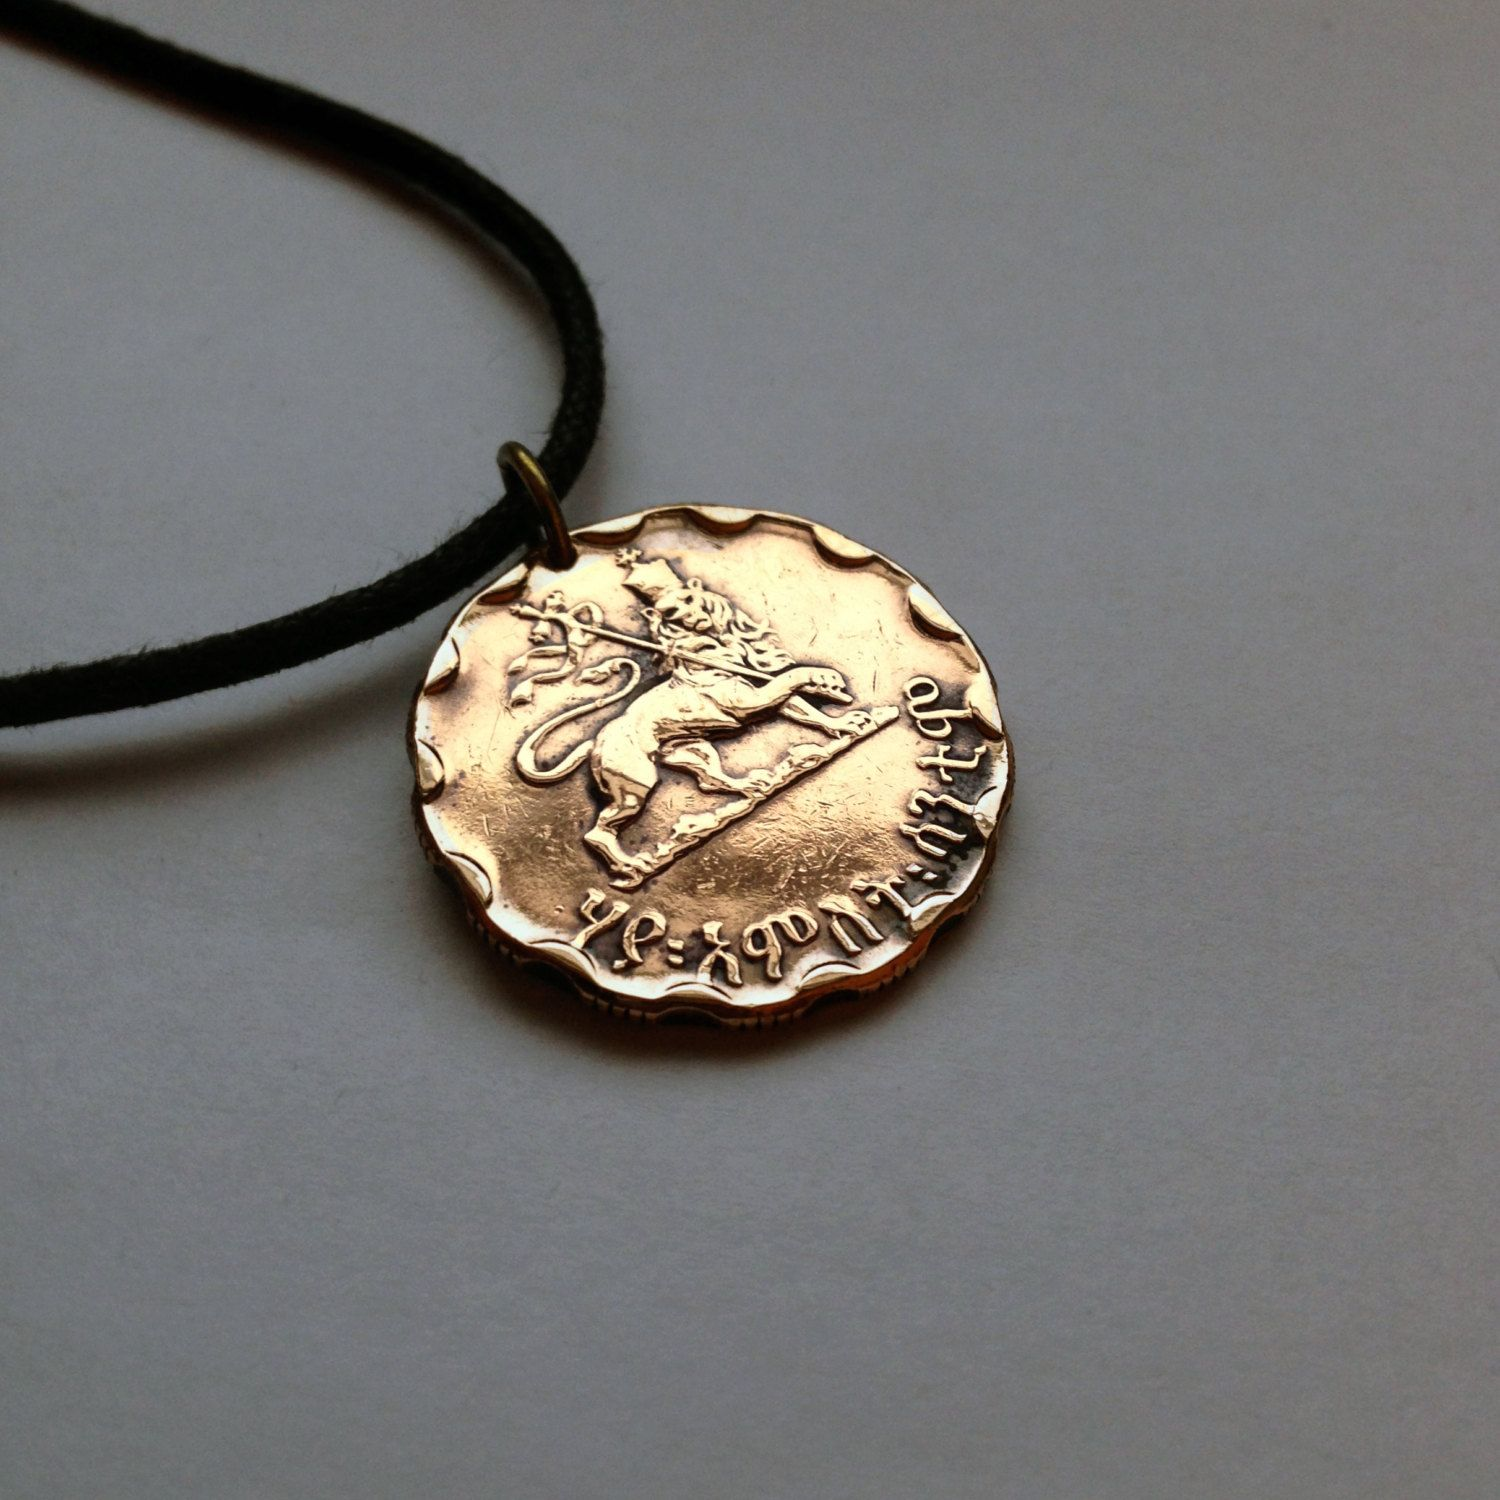 1944 Ethiopia 25 Santeem Cents coin pendant necklace jewelry Haile Selassie I Africa African crowned Lion of Judah World War 2 No.000618 by acnyCOINJEWELRY on Etsy